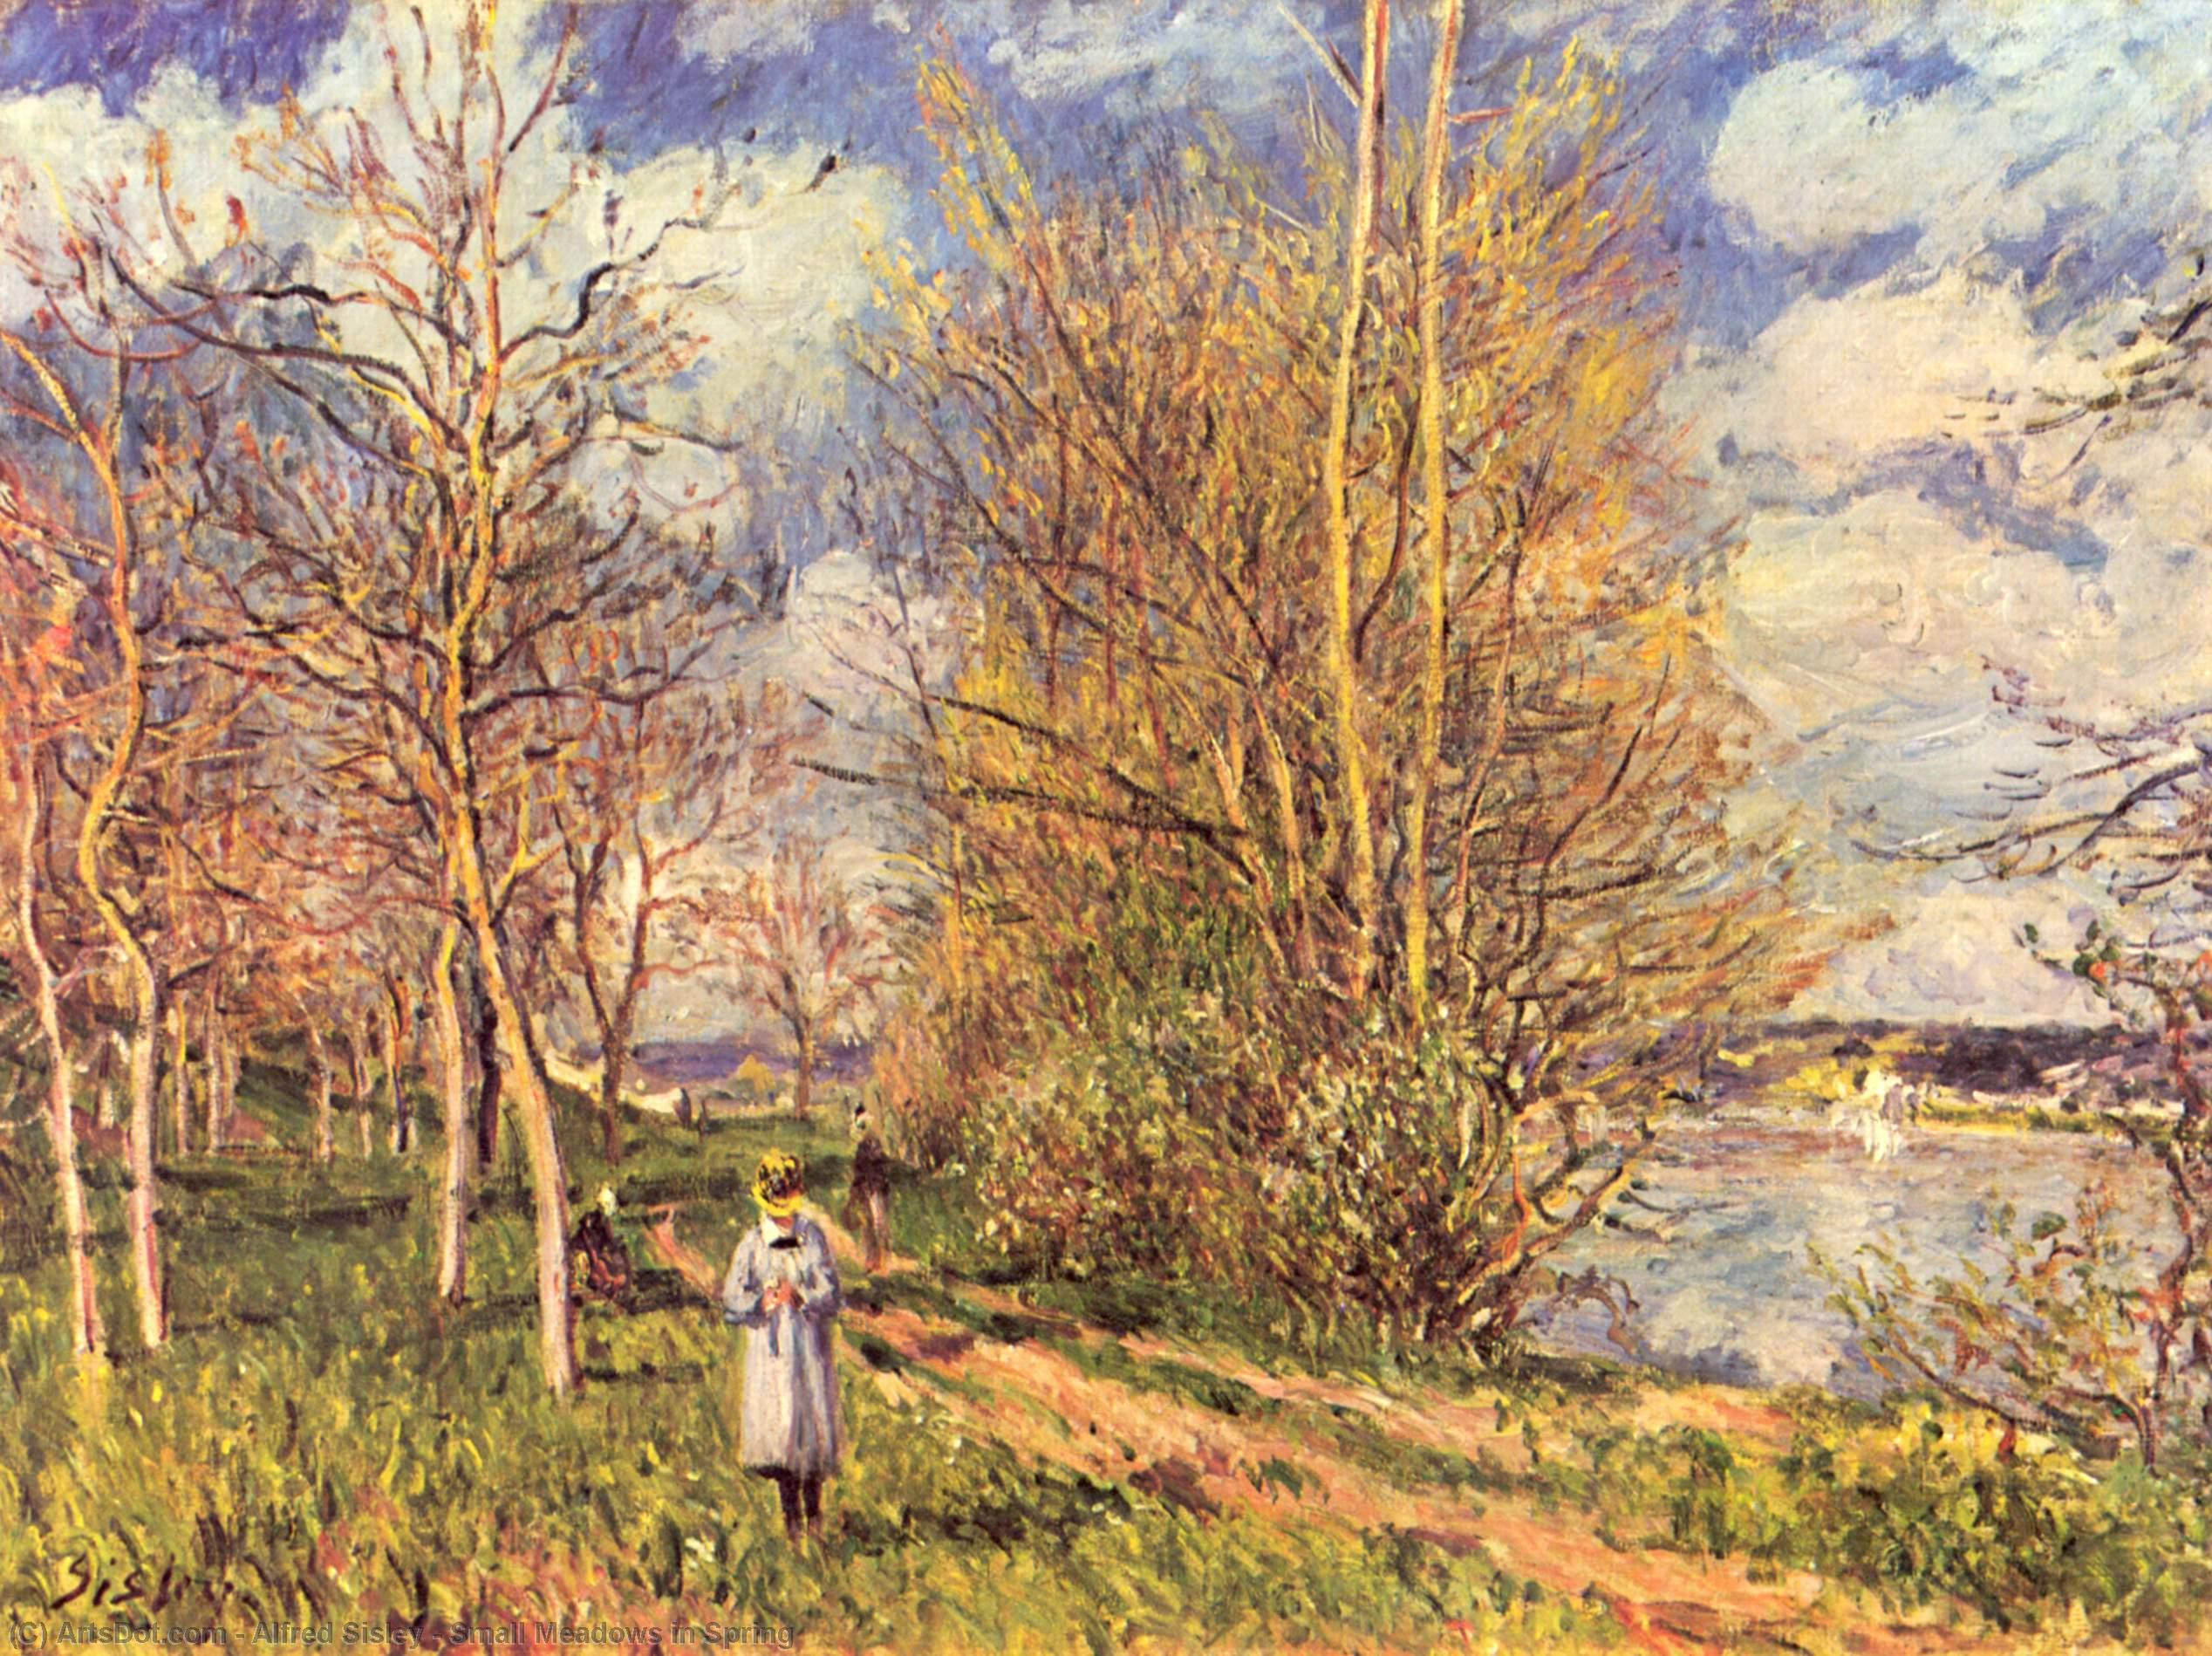 Wikioo.org - The Encyclopedia of Fine Arts - Painting, Artwork by Alfred Sisley - Small Meadows in Spring